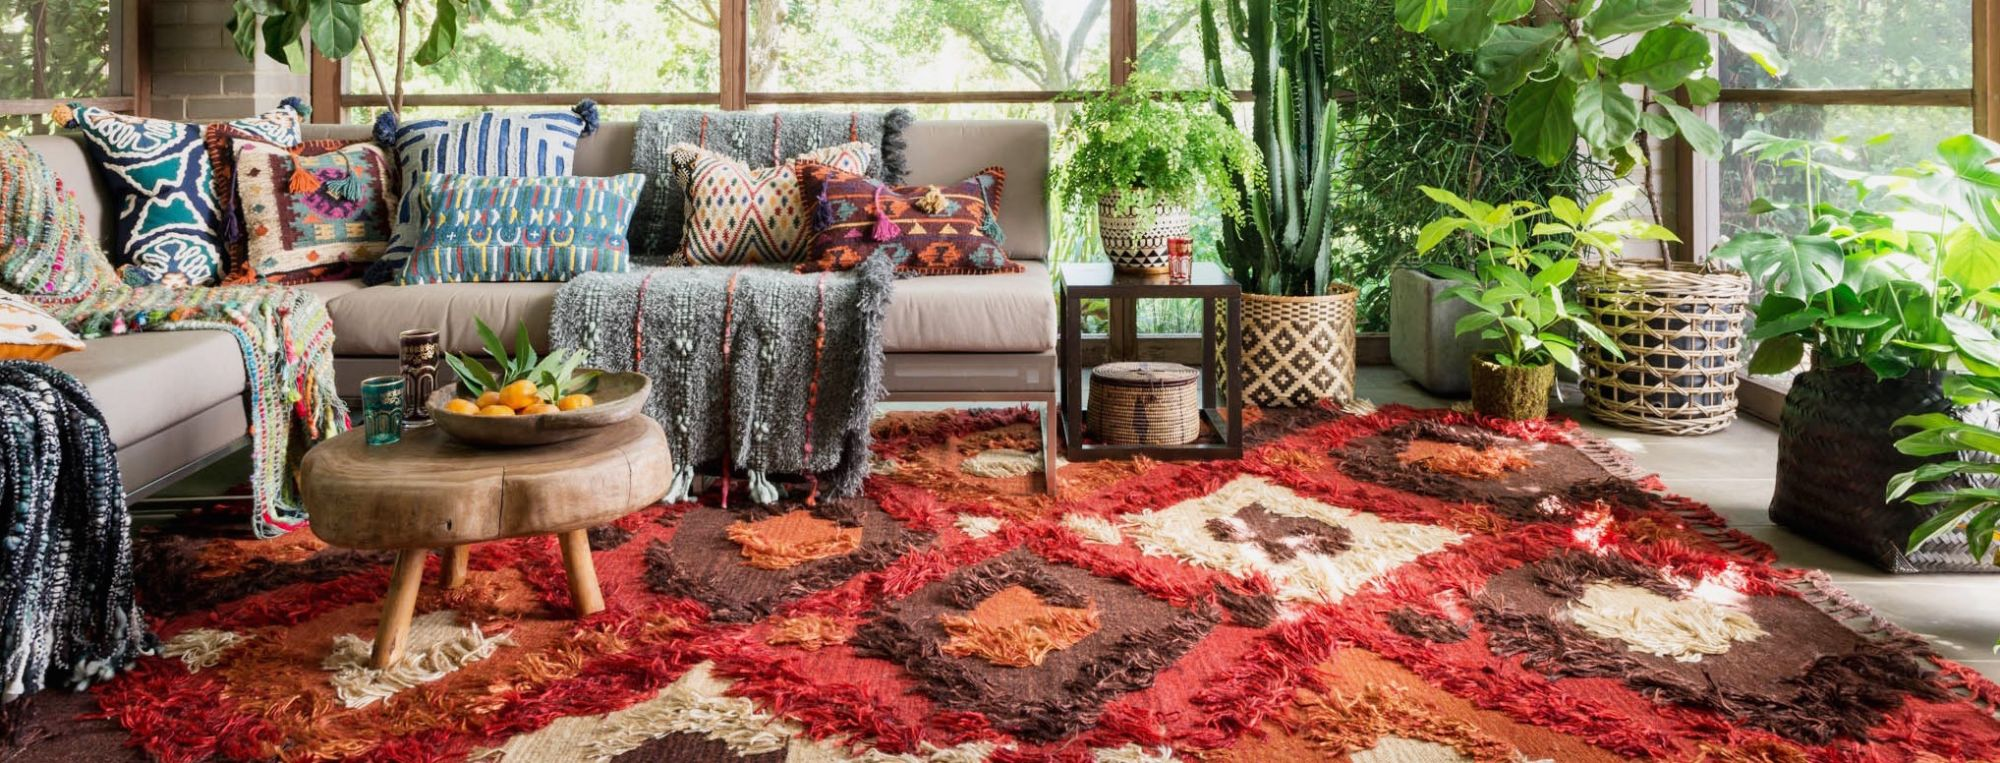 moroccan living room rug design